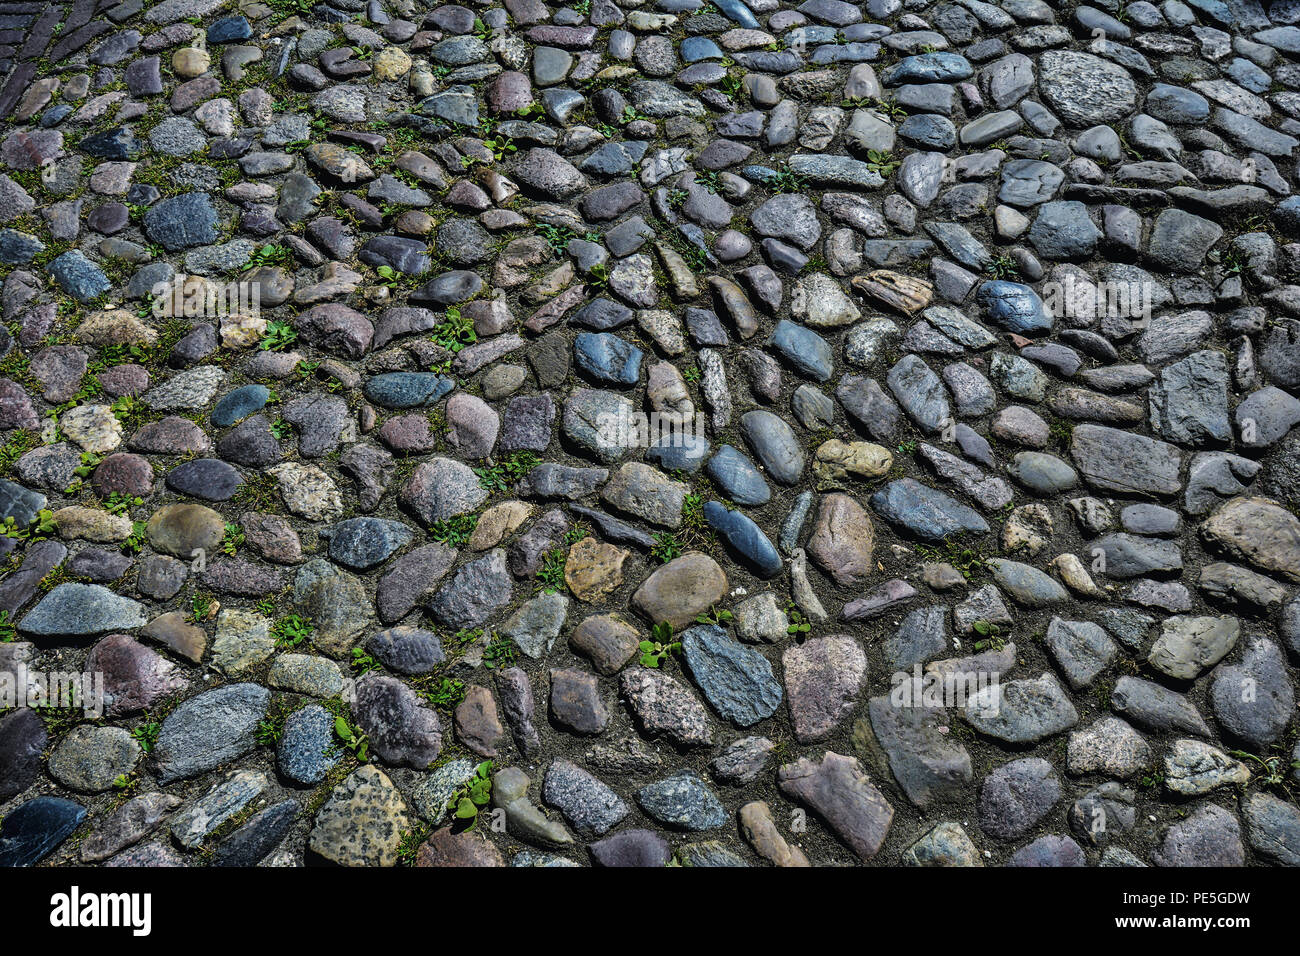 Ancient cobbled street surface close up showing all different stone sizes and colours used to cobble the surface. - Stock Image